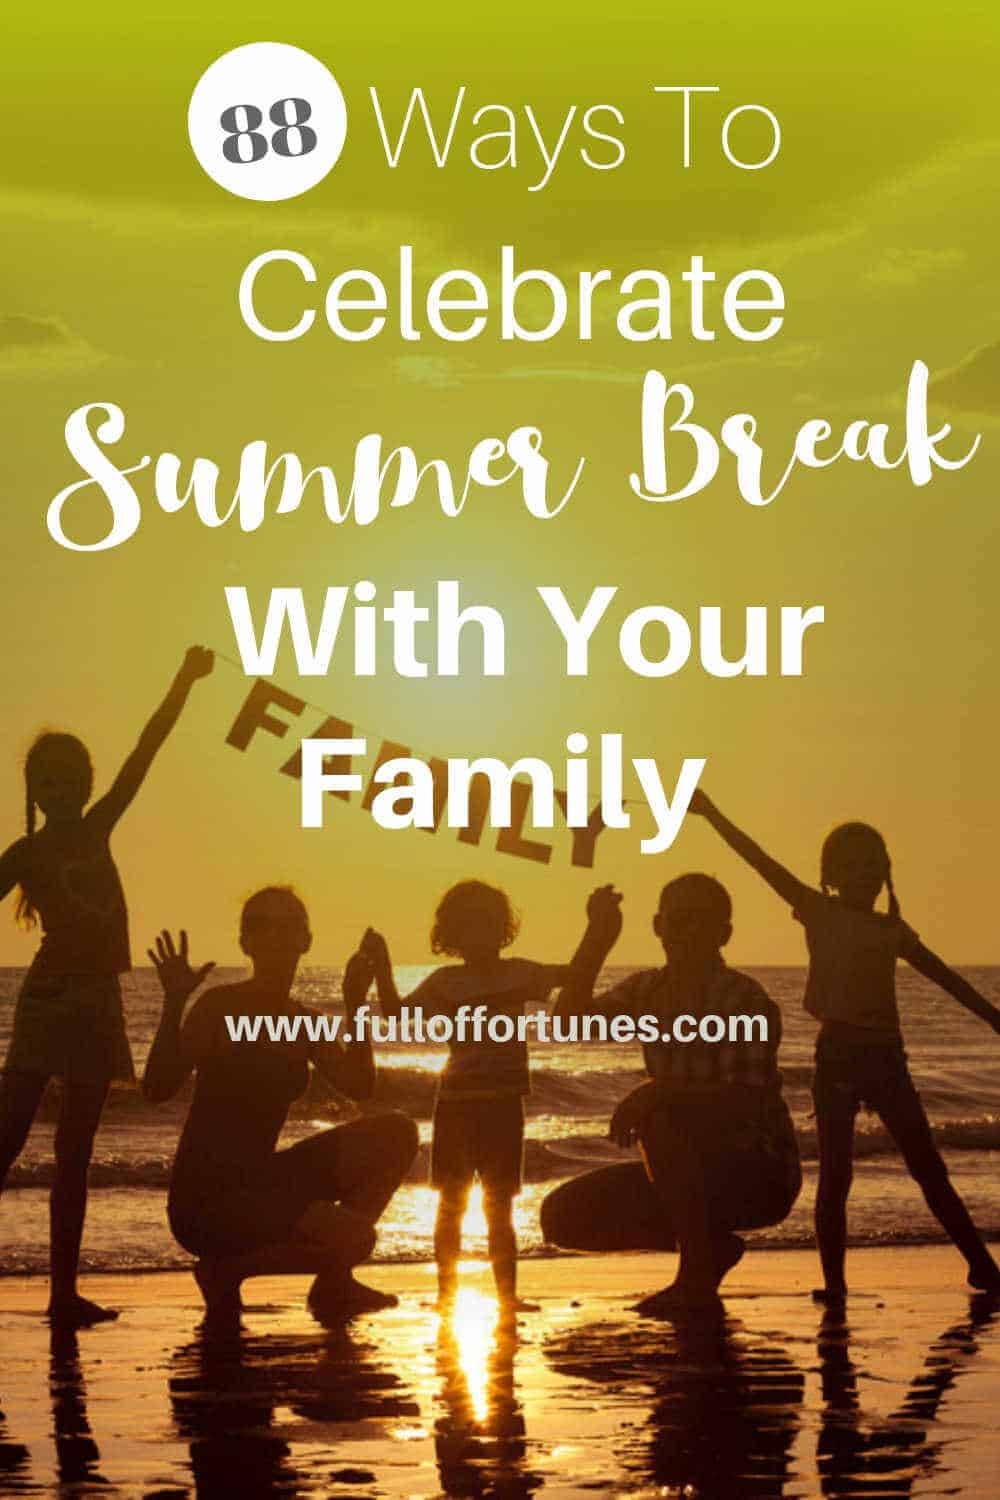 Ways To Celebrate Summer Break With Your Family